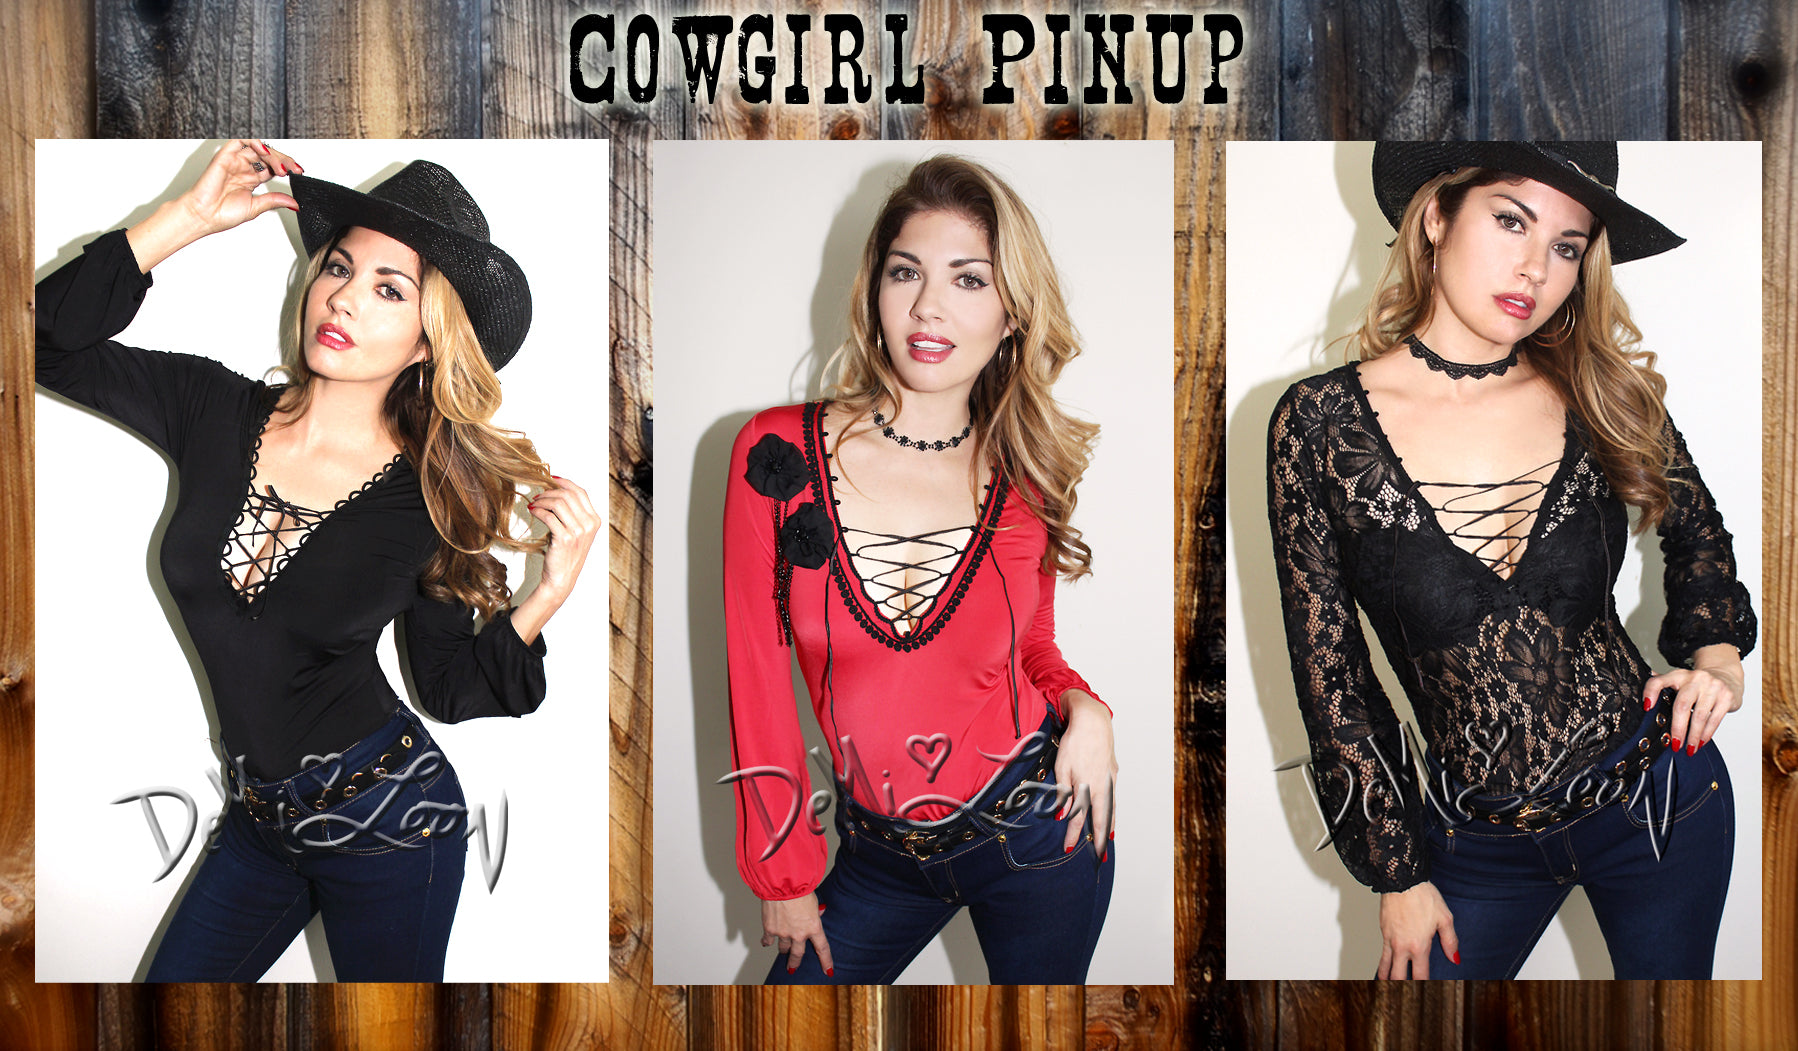 Cowgirl Pinup clothing by Demi Loon